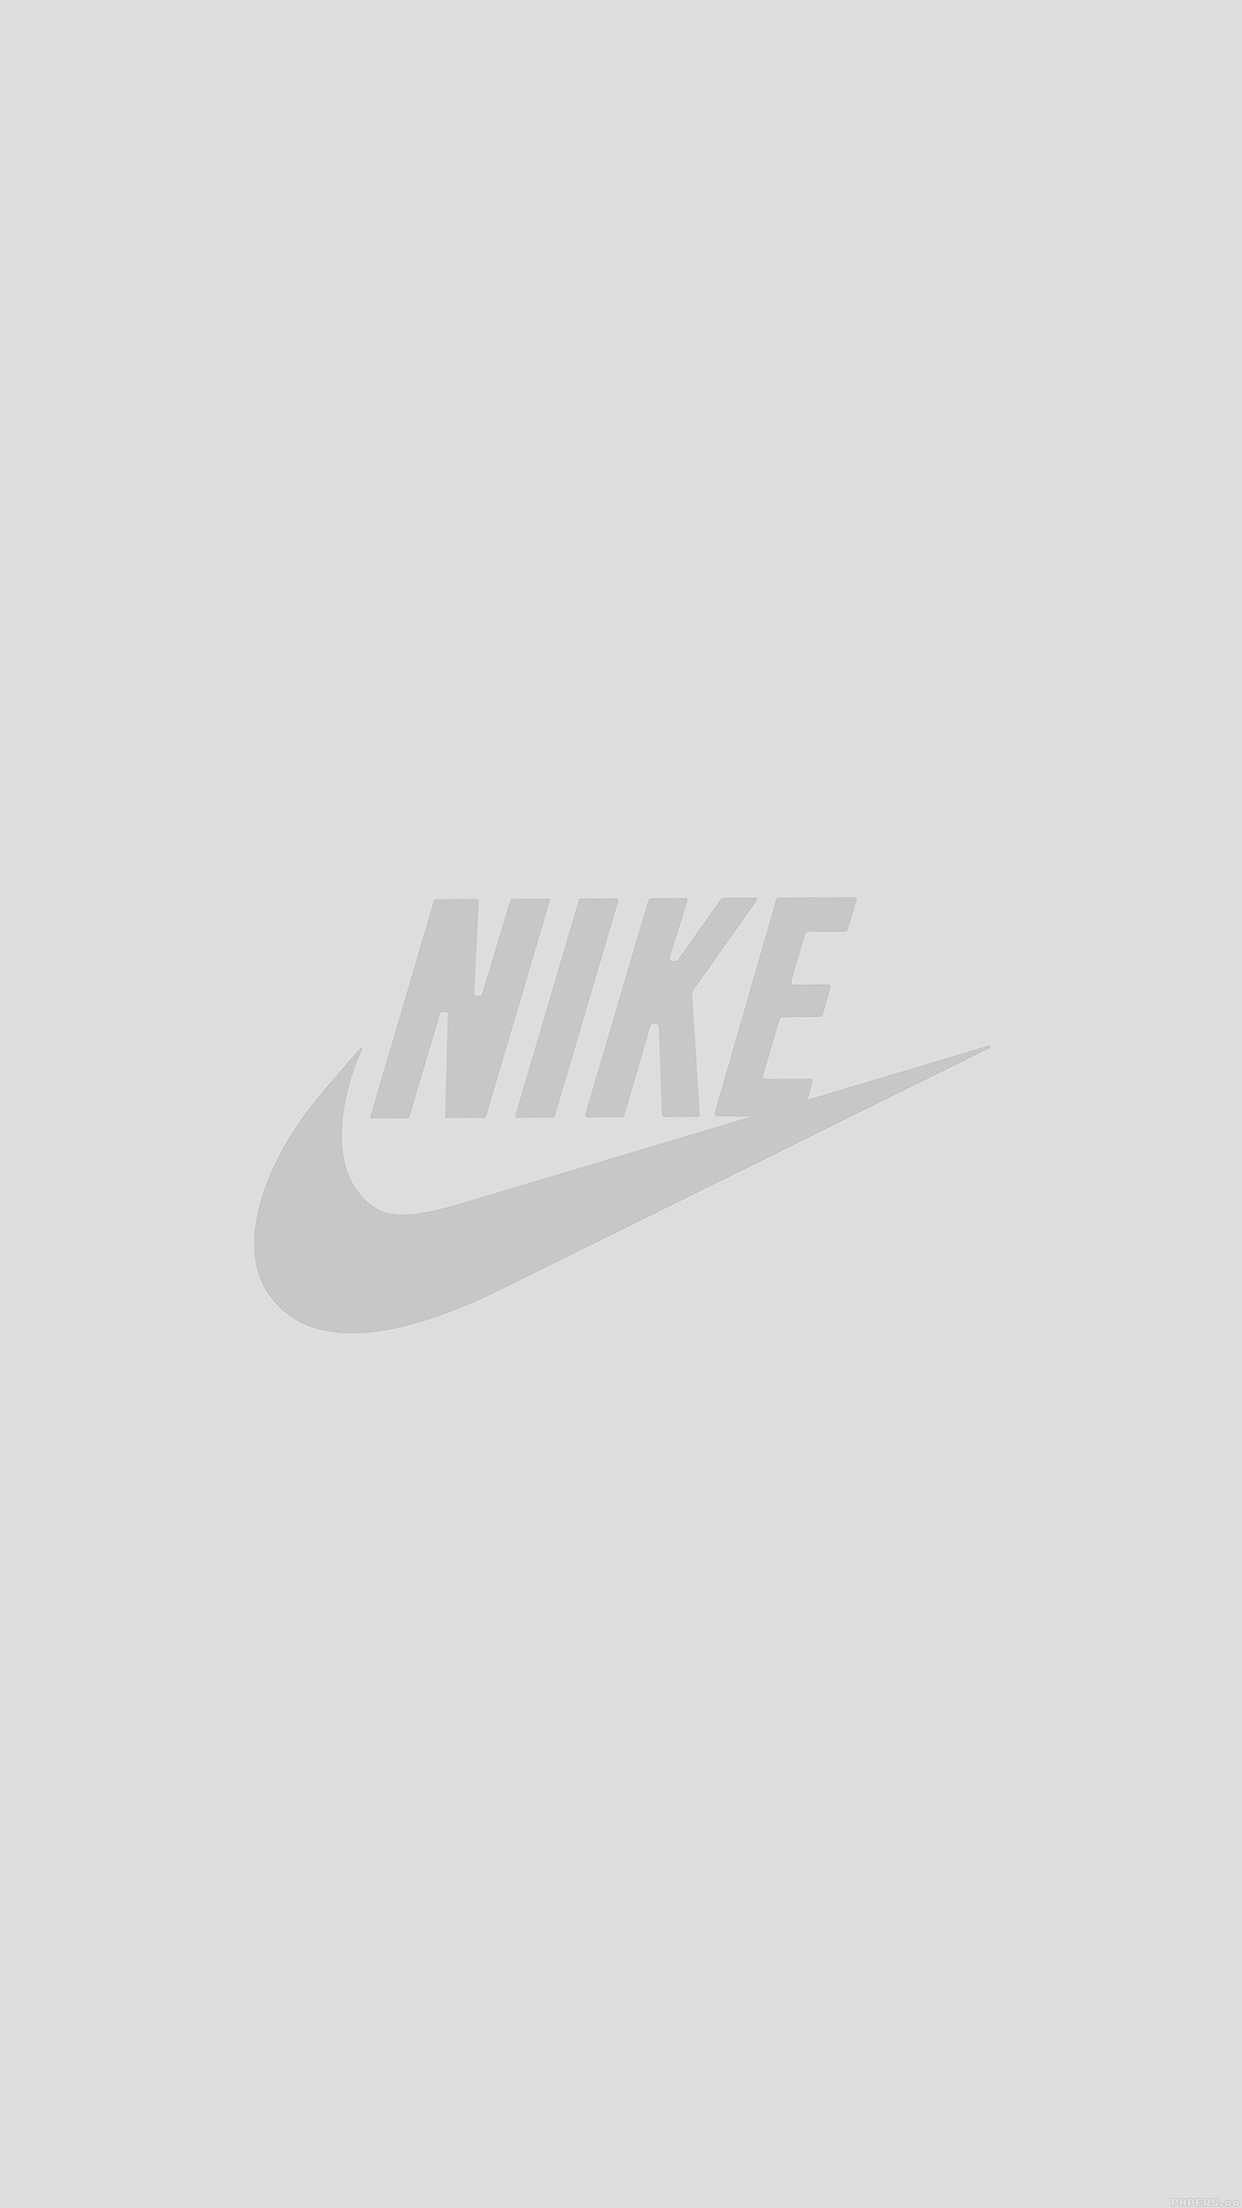 Iphone6papers Co Iphone 6 Wallpaper Al87 Nike Logo